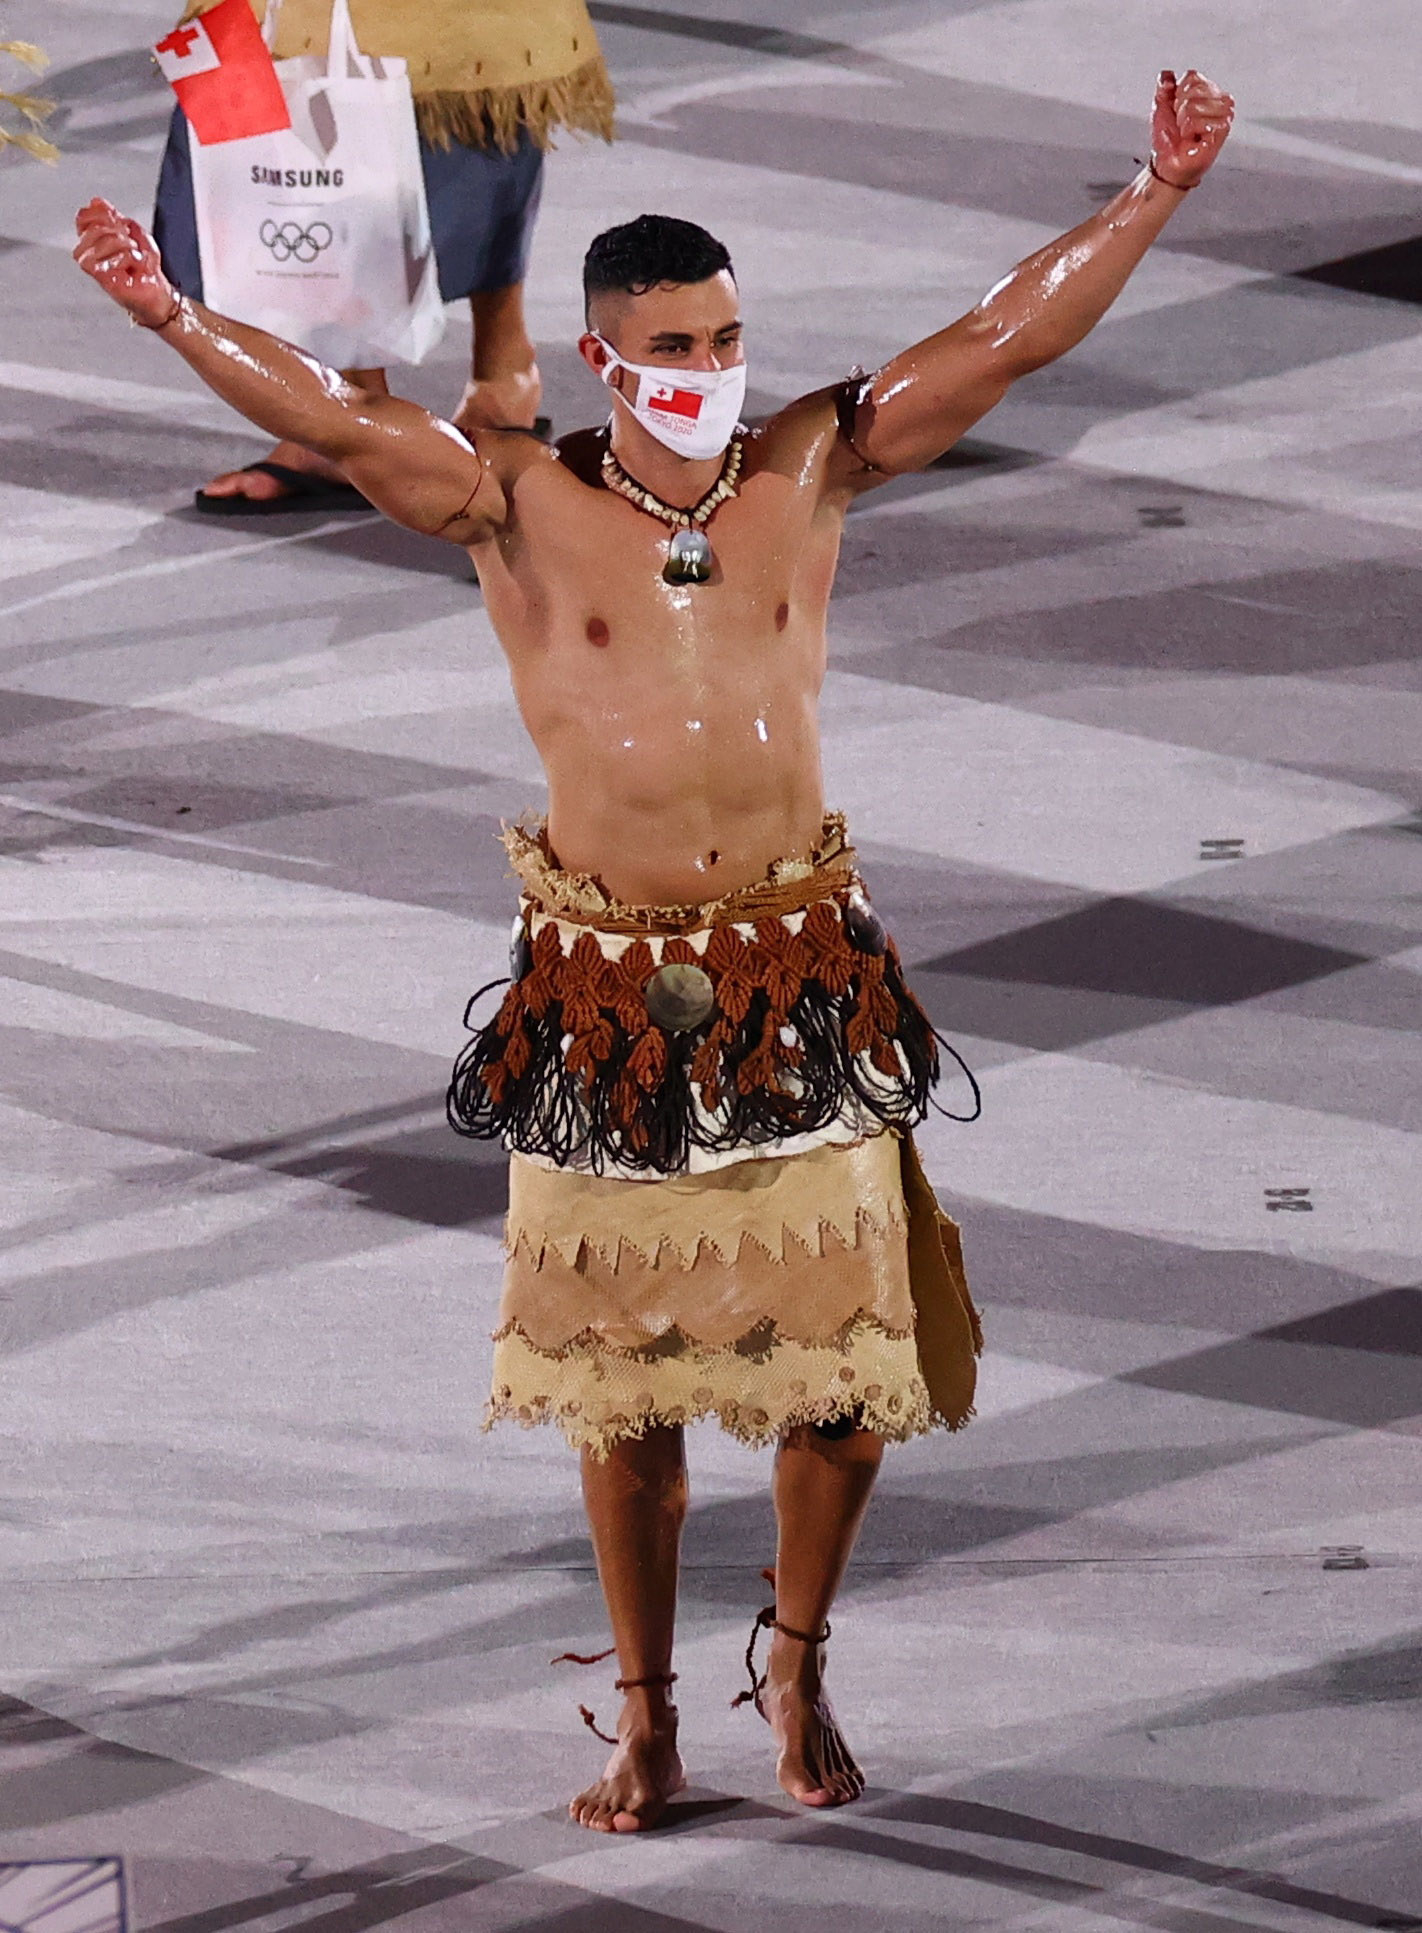 Pita Taufatofua is seen with an oily, muscled chest as he marches through an empty stadium carrying Tonga's flag next to his fellow athletes